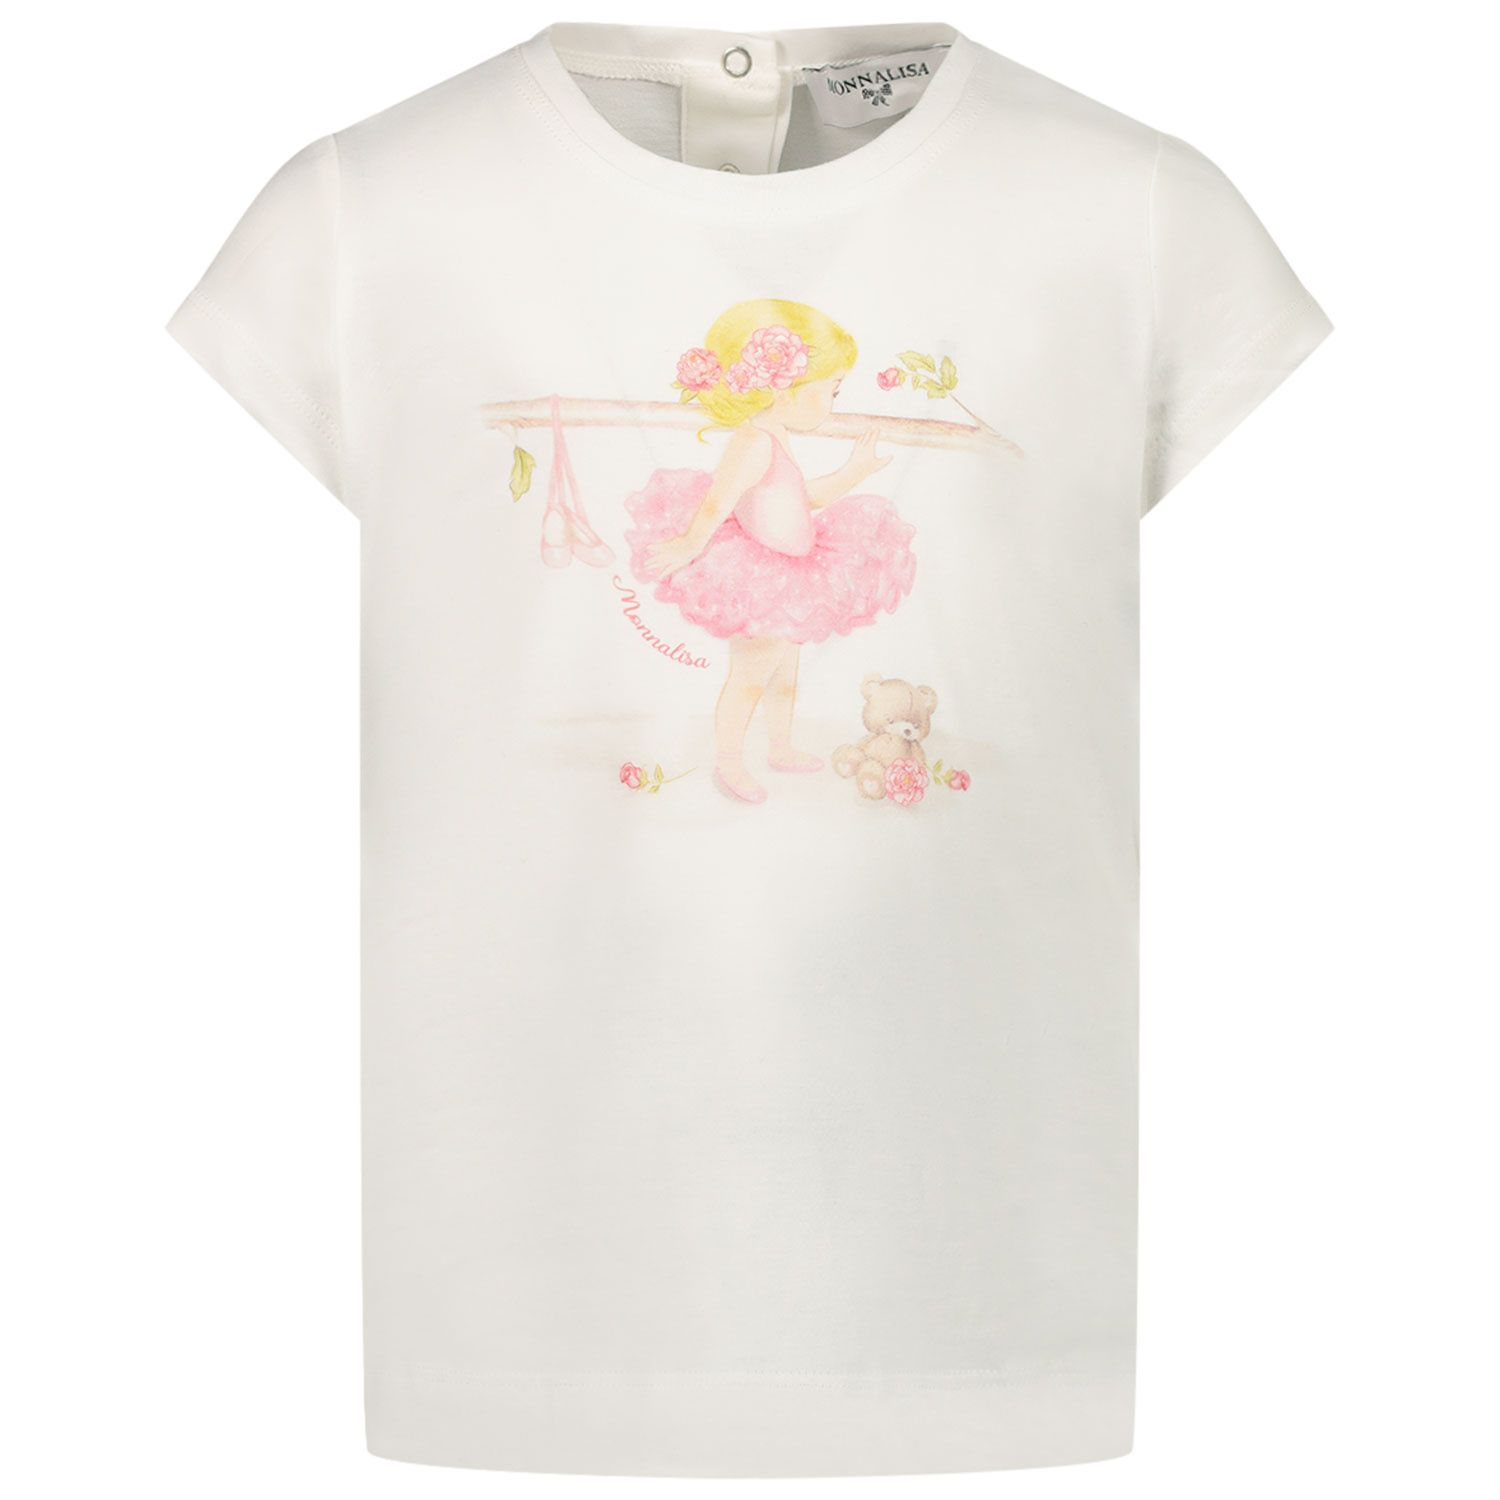 Picture of MonnaLisa 497602SB baby shirt off white